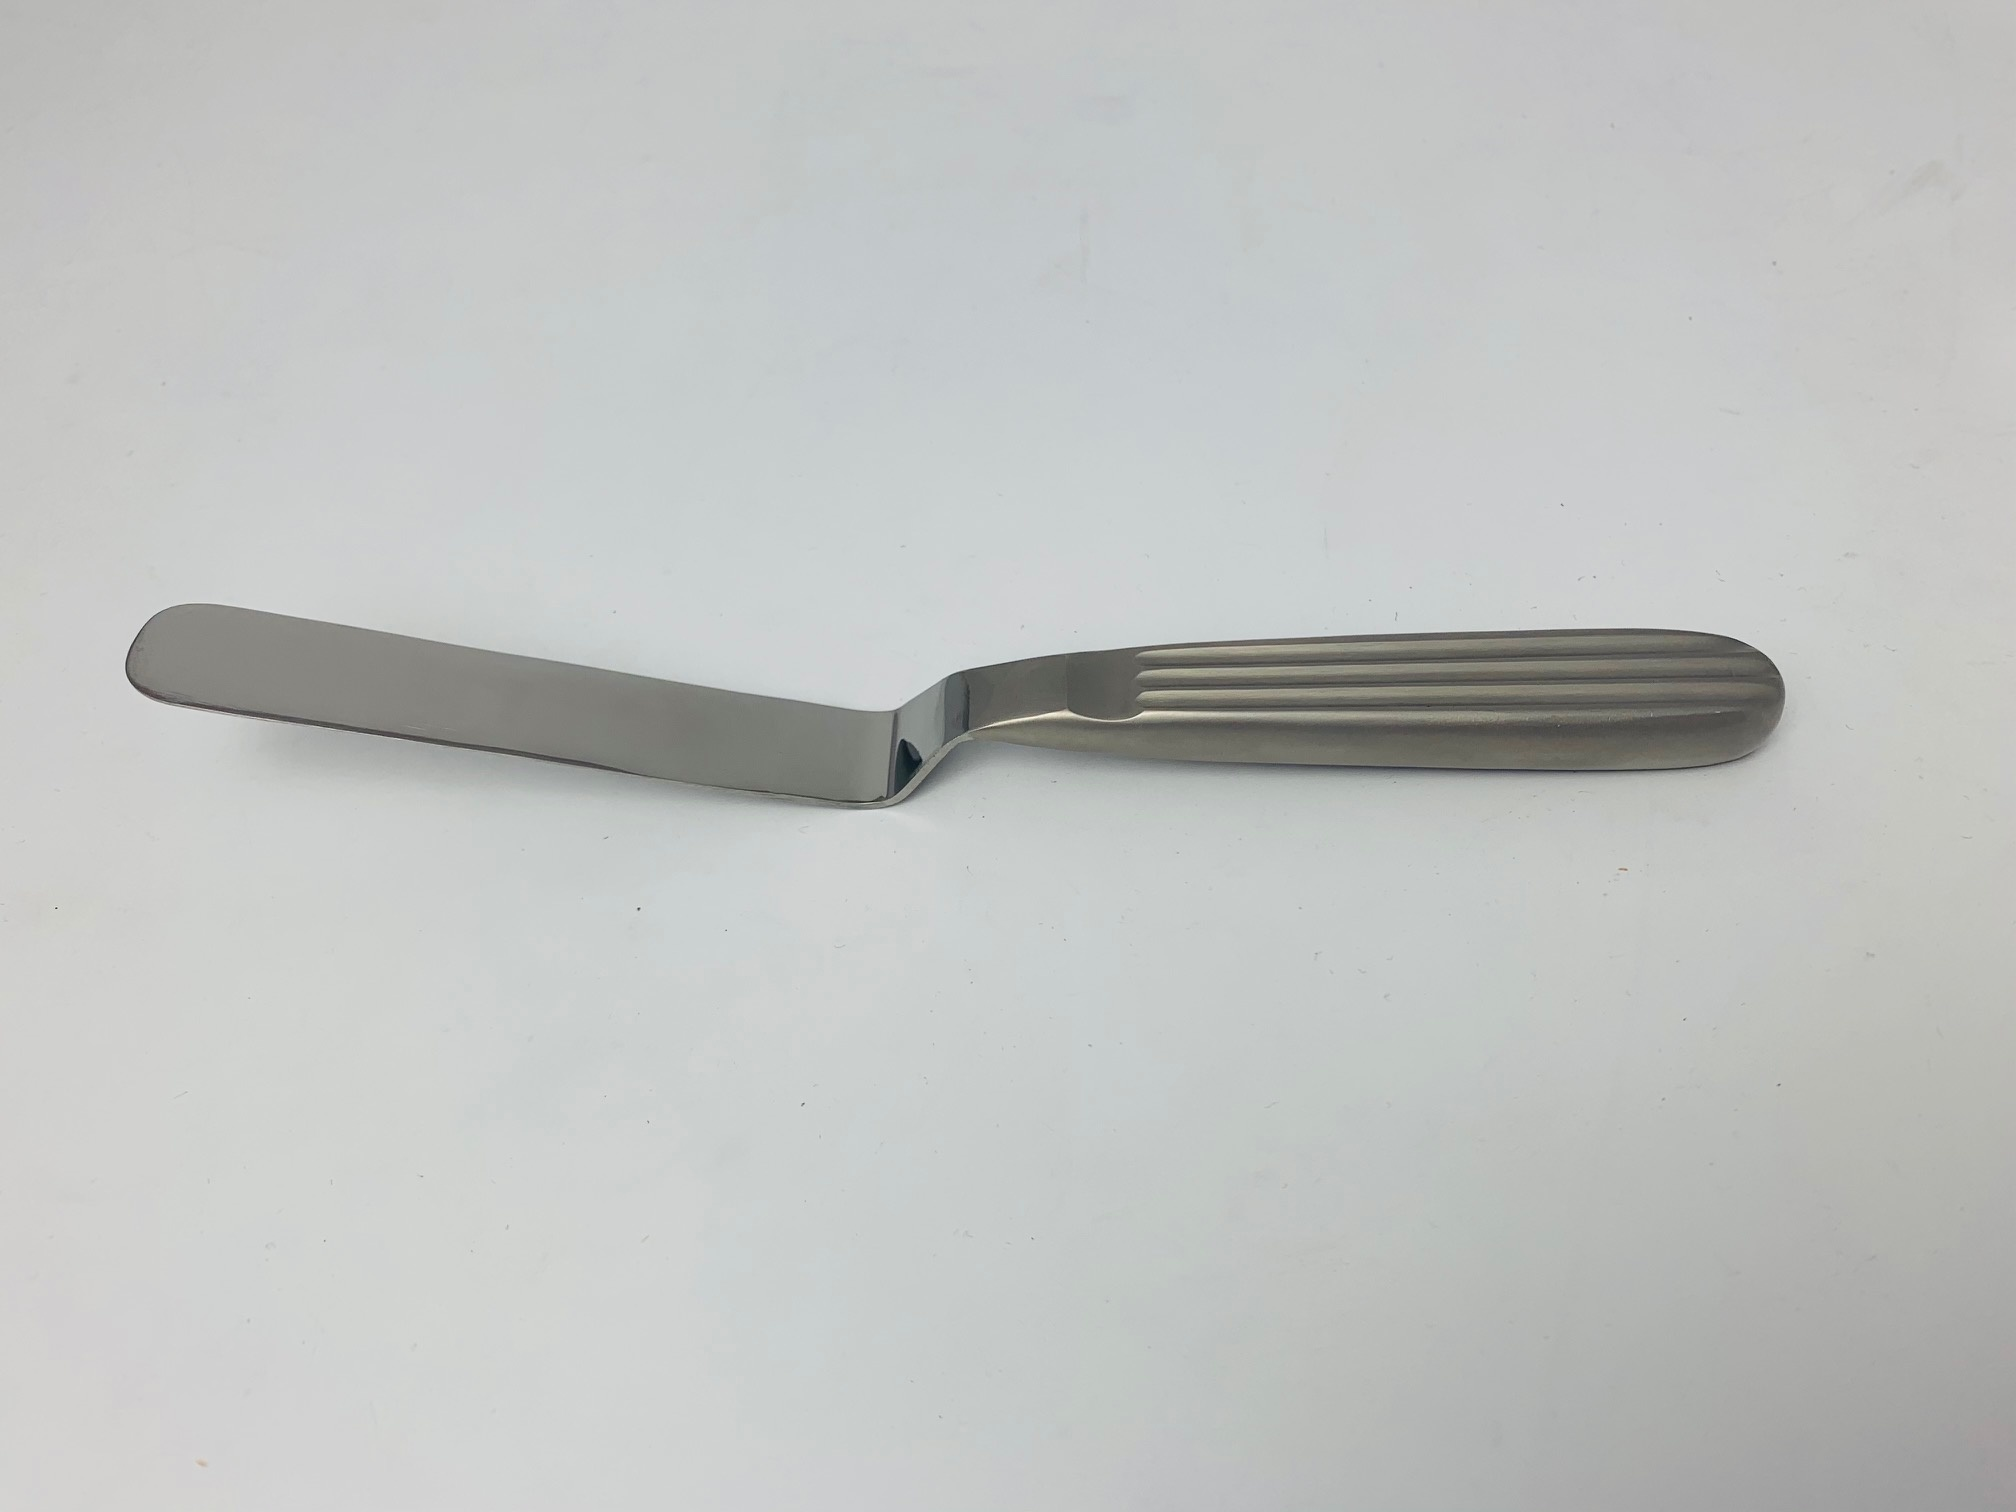 Spatula stainless 190 mm